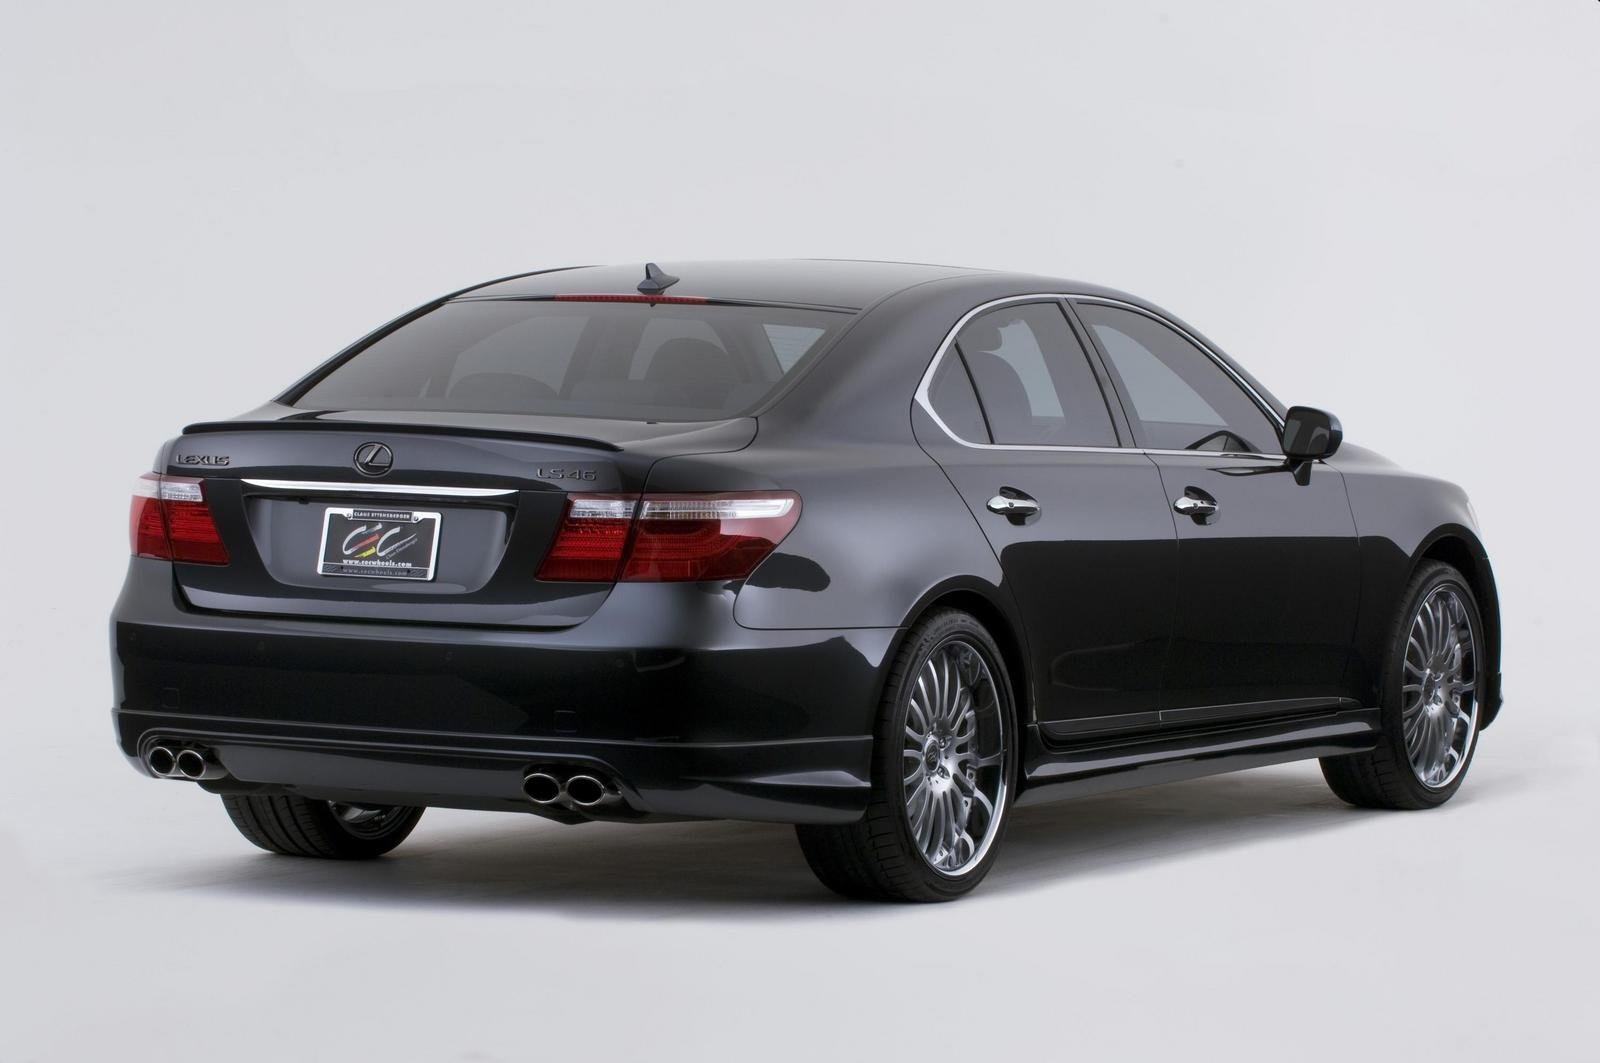 2007 lexus ls 460 by cec wheels picture 210926 car review top speed. Black Bedroom Furniture Sets. Home Design Ideas